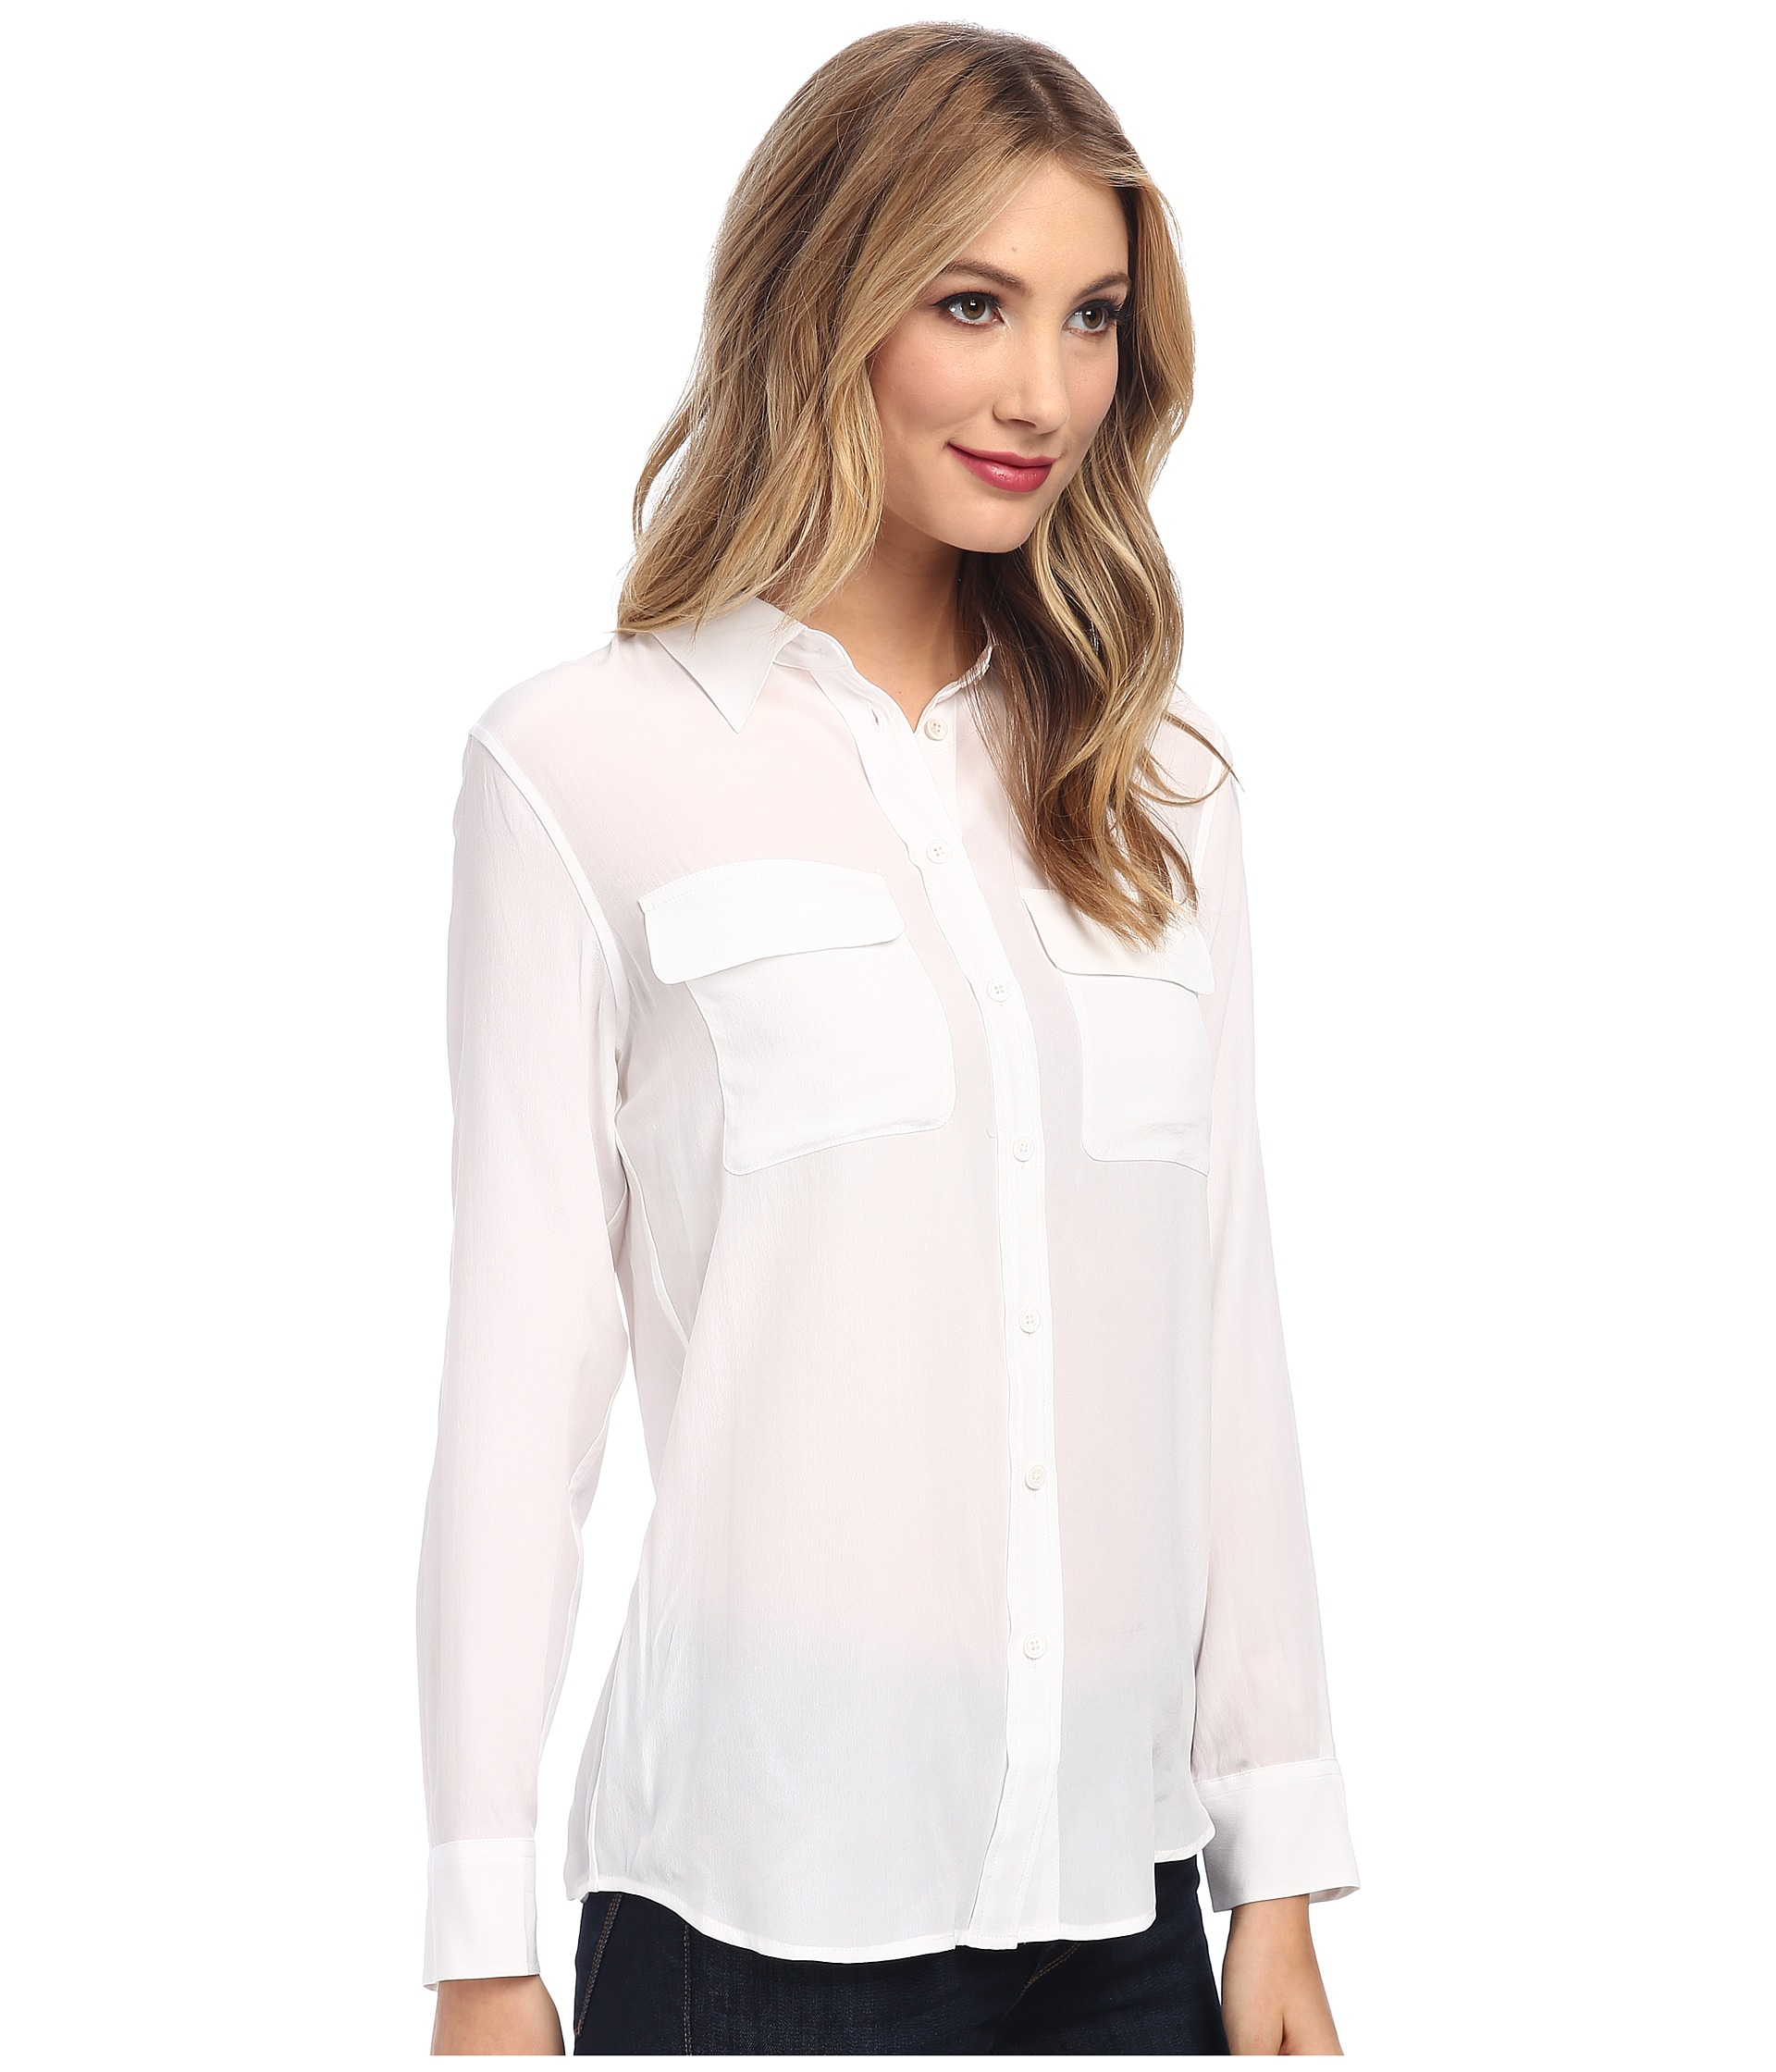 Shop eBay for great deals on Panhandle Slim Women's Tops & Blouses. You'll find new or used products in Panhandle Slim Women's Tops & Blouses on eBay. Free shipping on selected items.